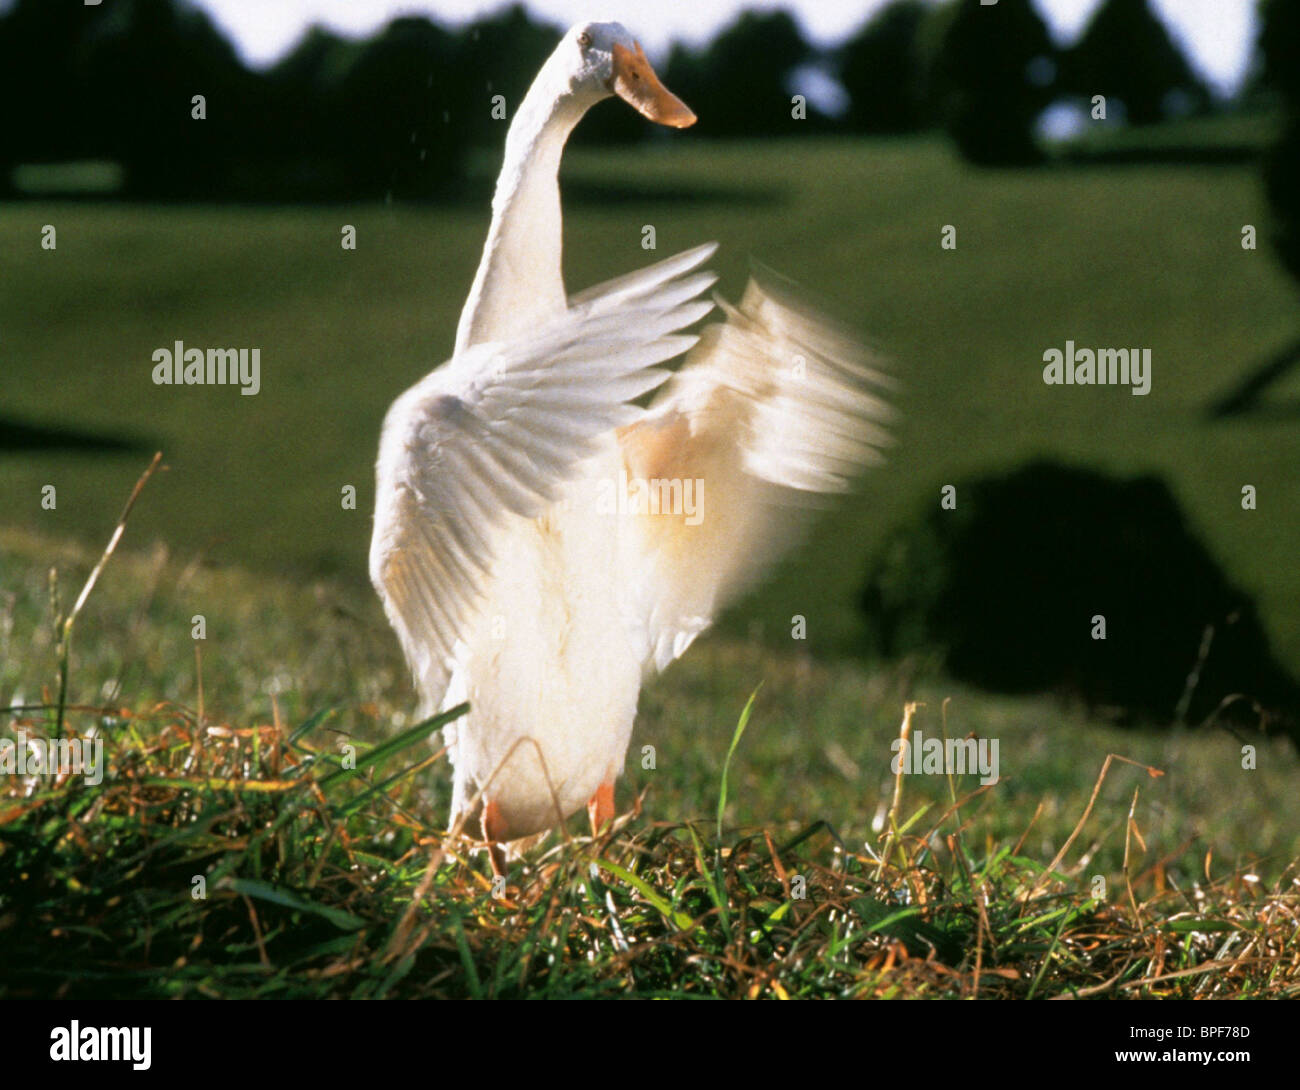 Babe Chris Noonan: FERDINAND THE DUCK BABE (1995 Stock Photo: 31067805